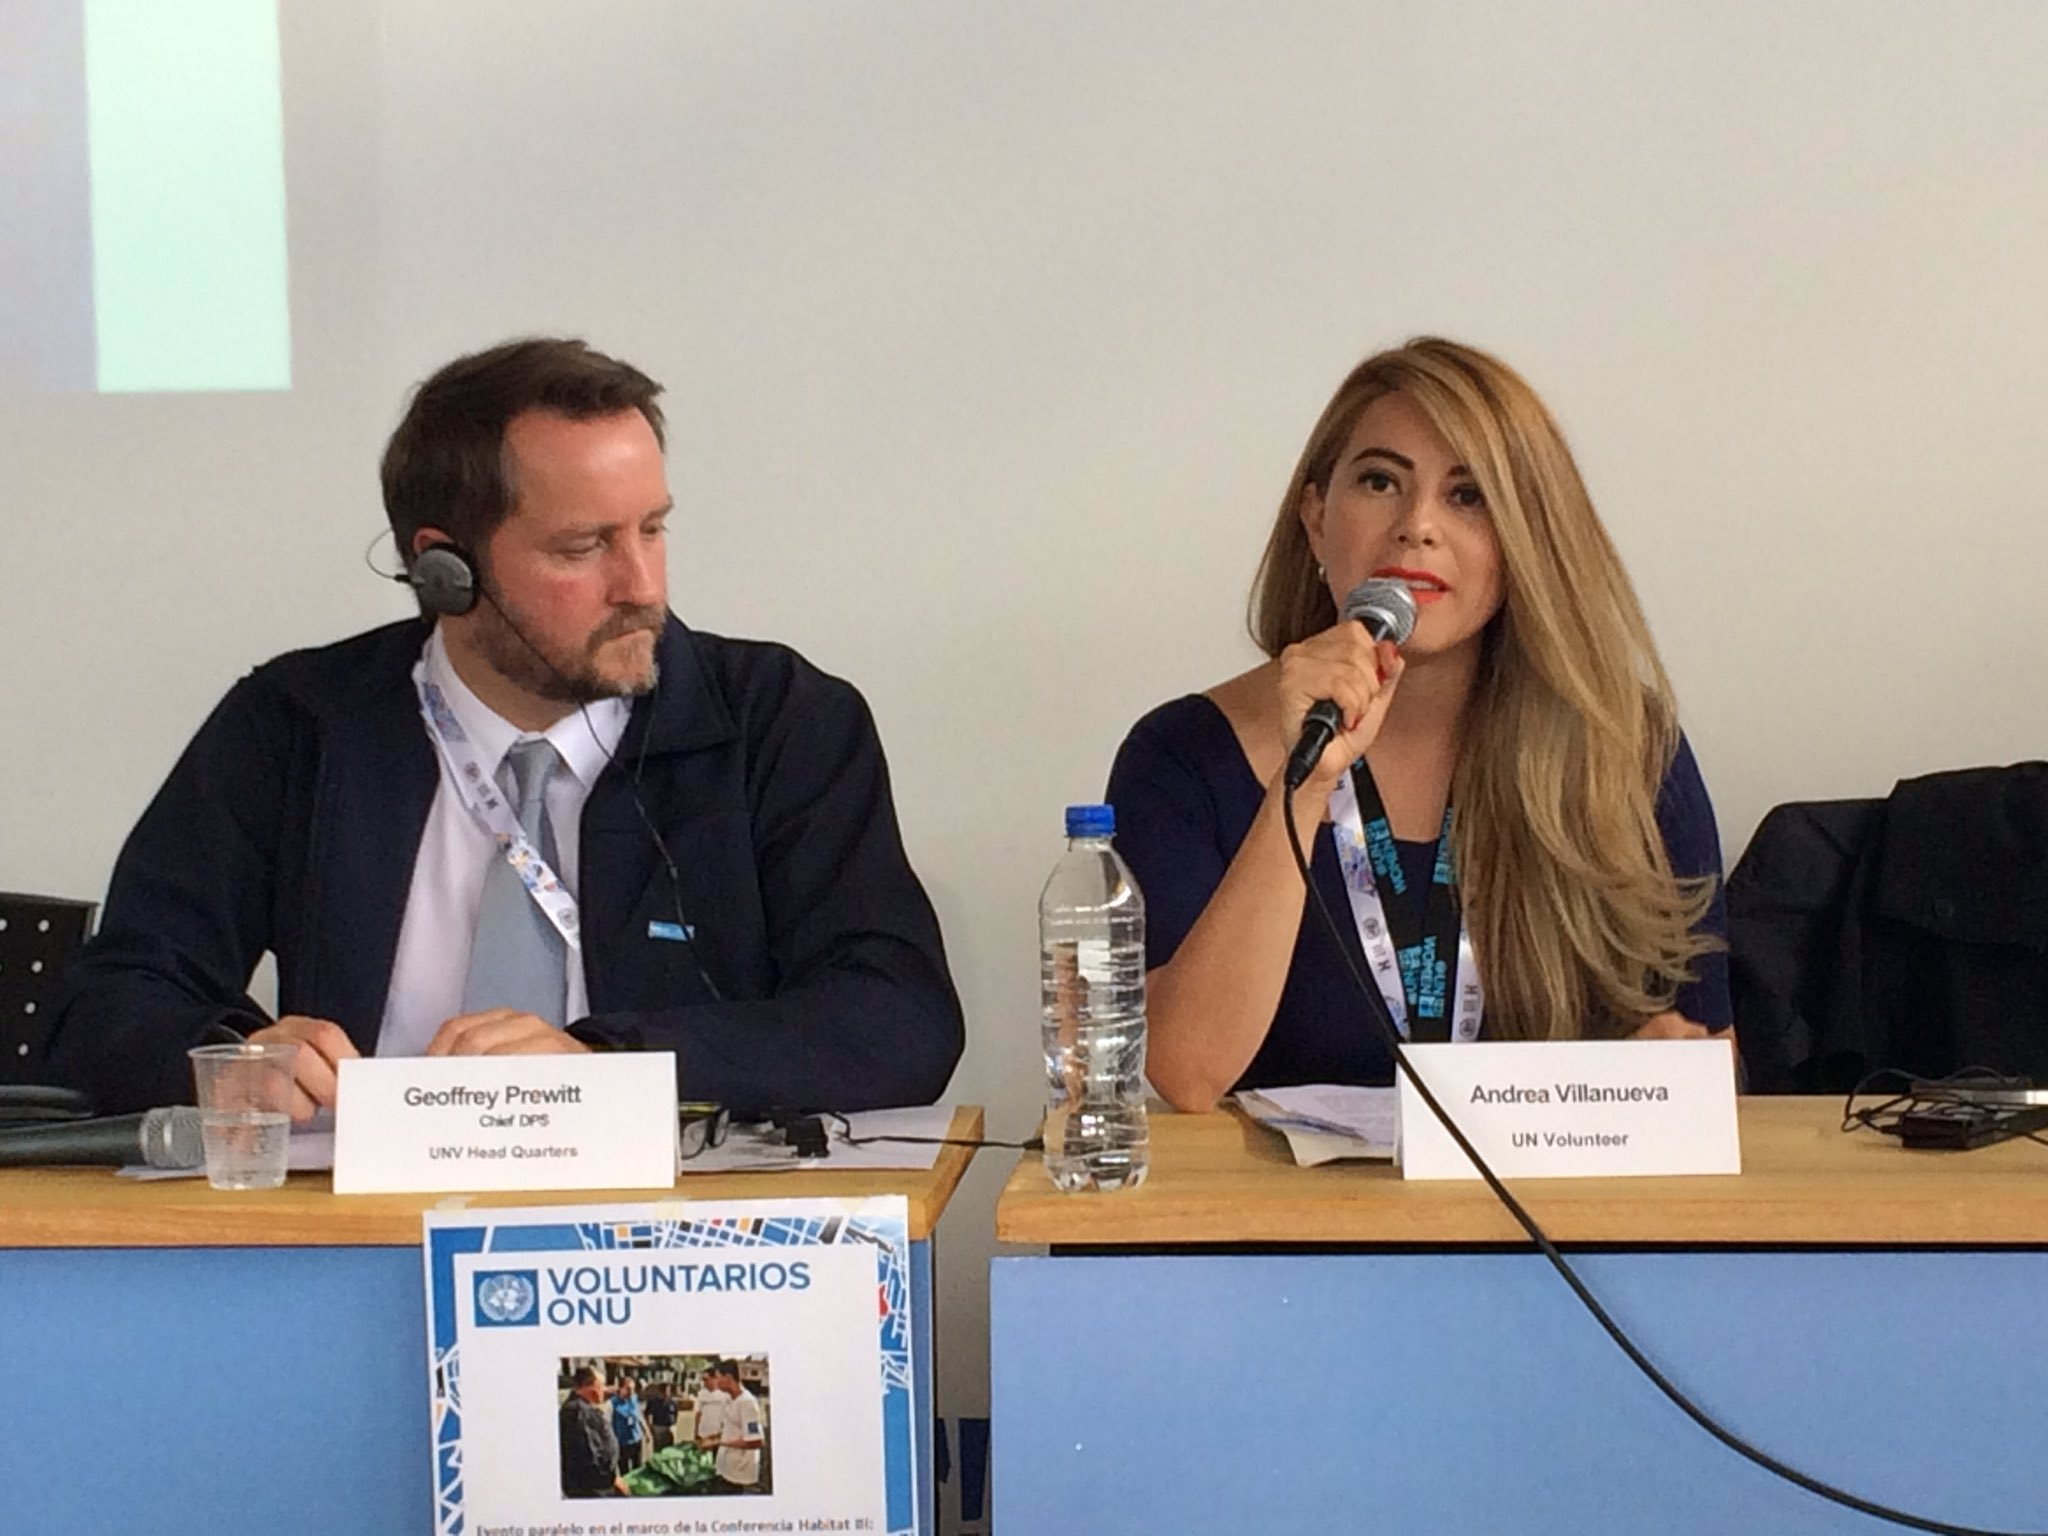 During UNV's side event at Habitat III, Andrea Villanueva, national UN Volunteer with UN Women, talks about her experience helping rebuild the communities affected by the devastating earthquake that shook parts of Ecuador earlier this year.